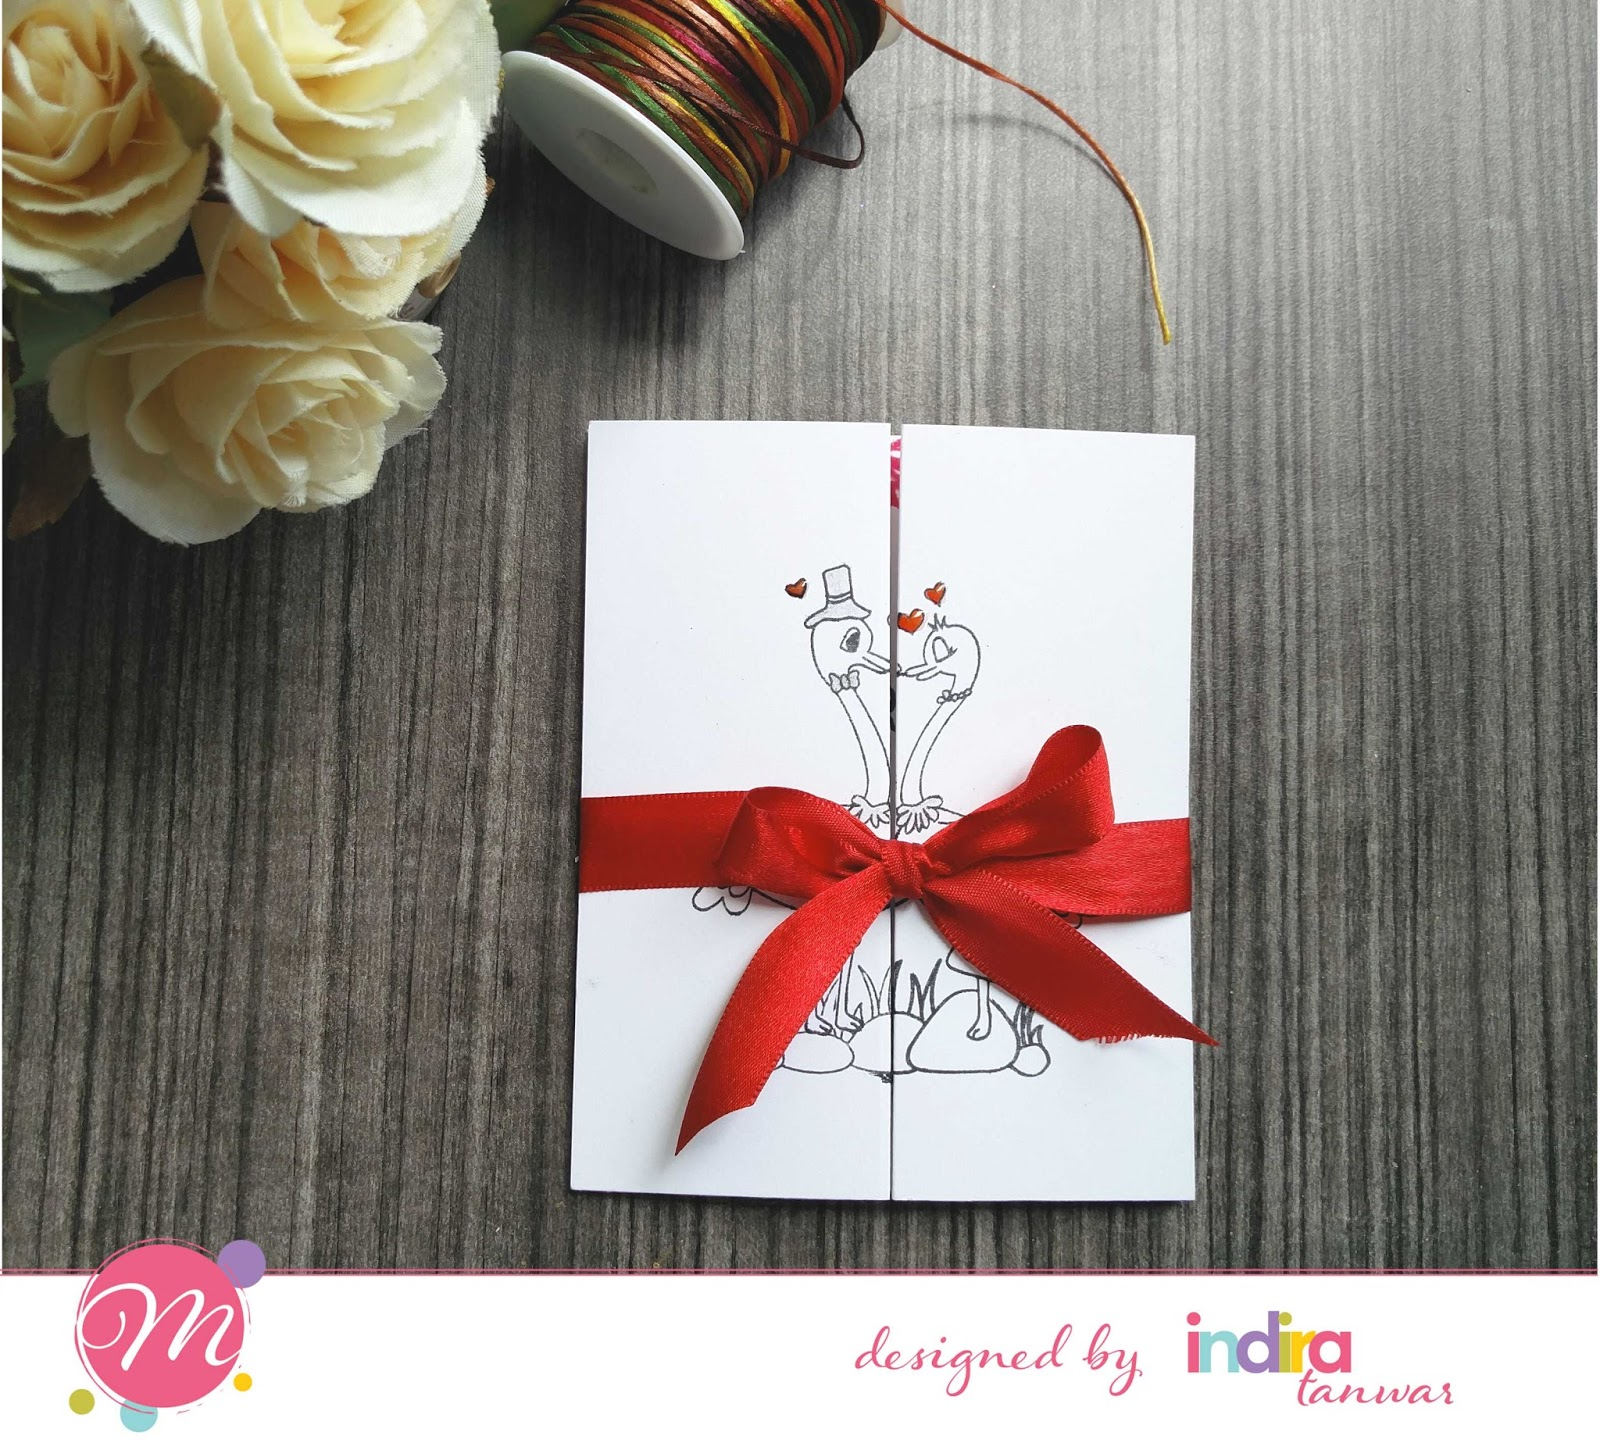 Mudra Craft Stamps: Love Cards and Bookmarks Galore